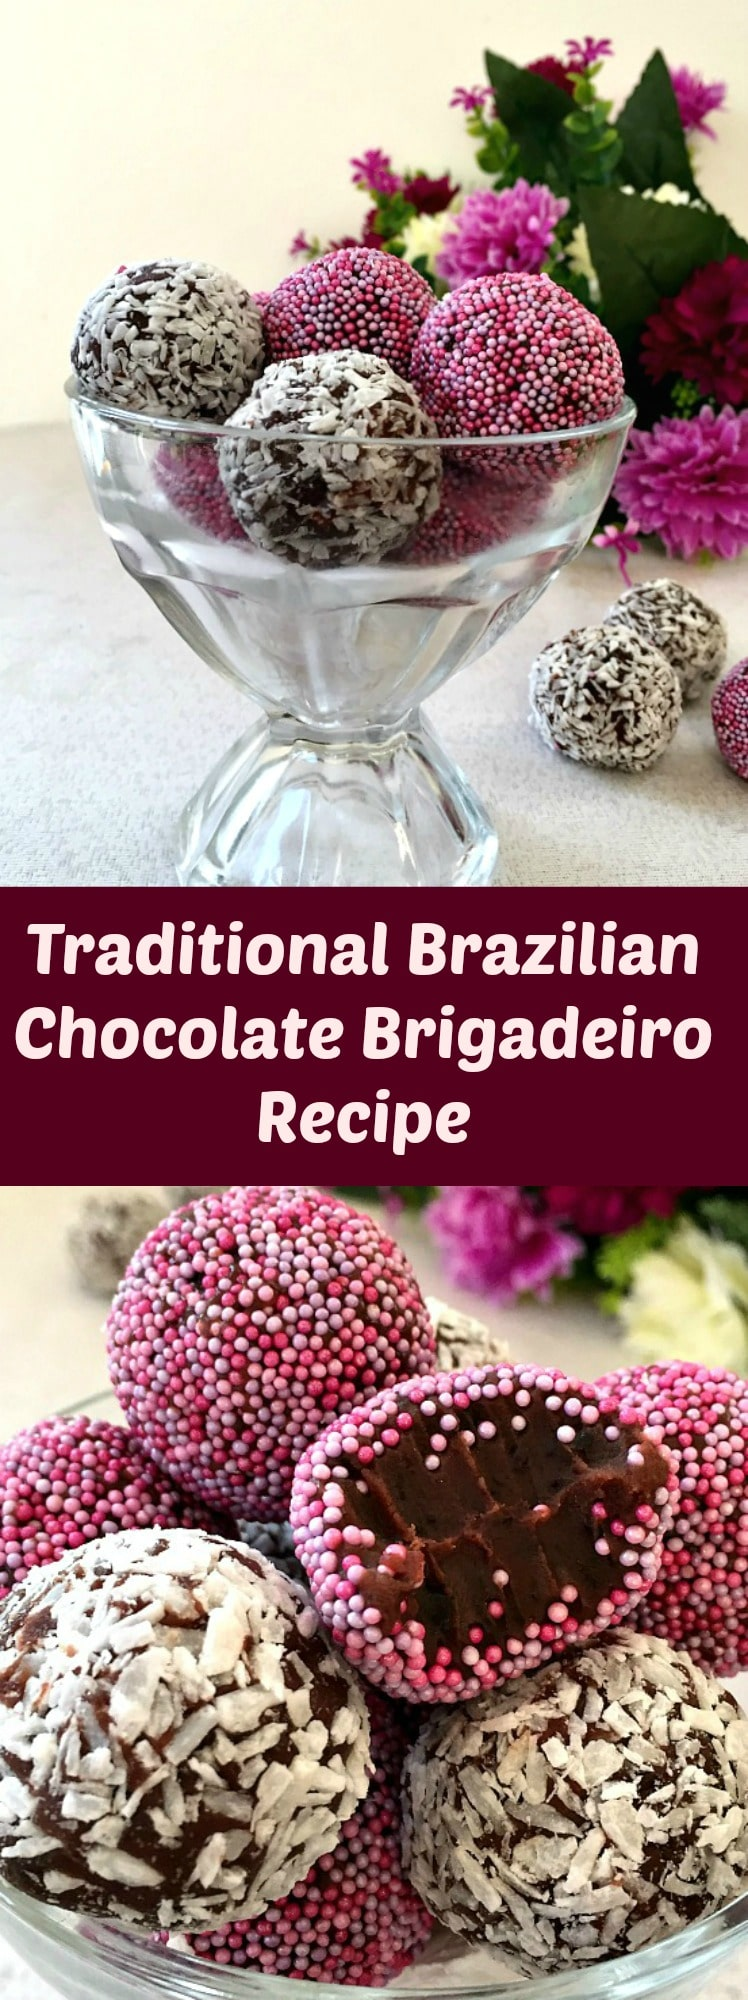 Traditional Brazilian Chocolate Brigadeiro Recipe, the bite-size treats that are so delicious. Kids absolutely love them, and grown-ups too.